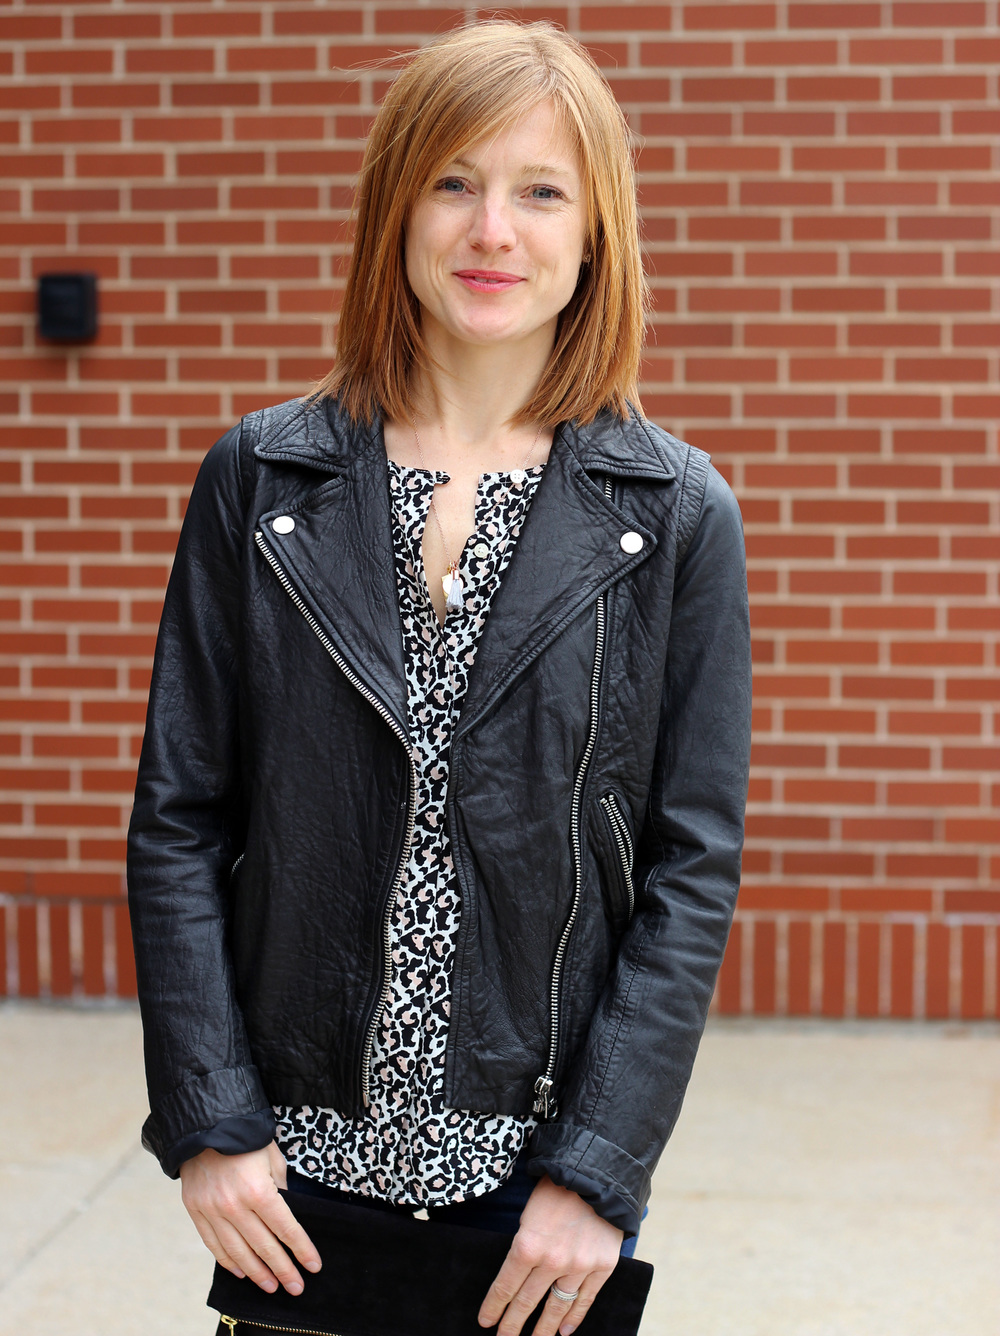 Anne of In Residence: Black leather Madewell jacket + leopard-print blouse